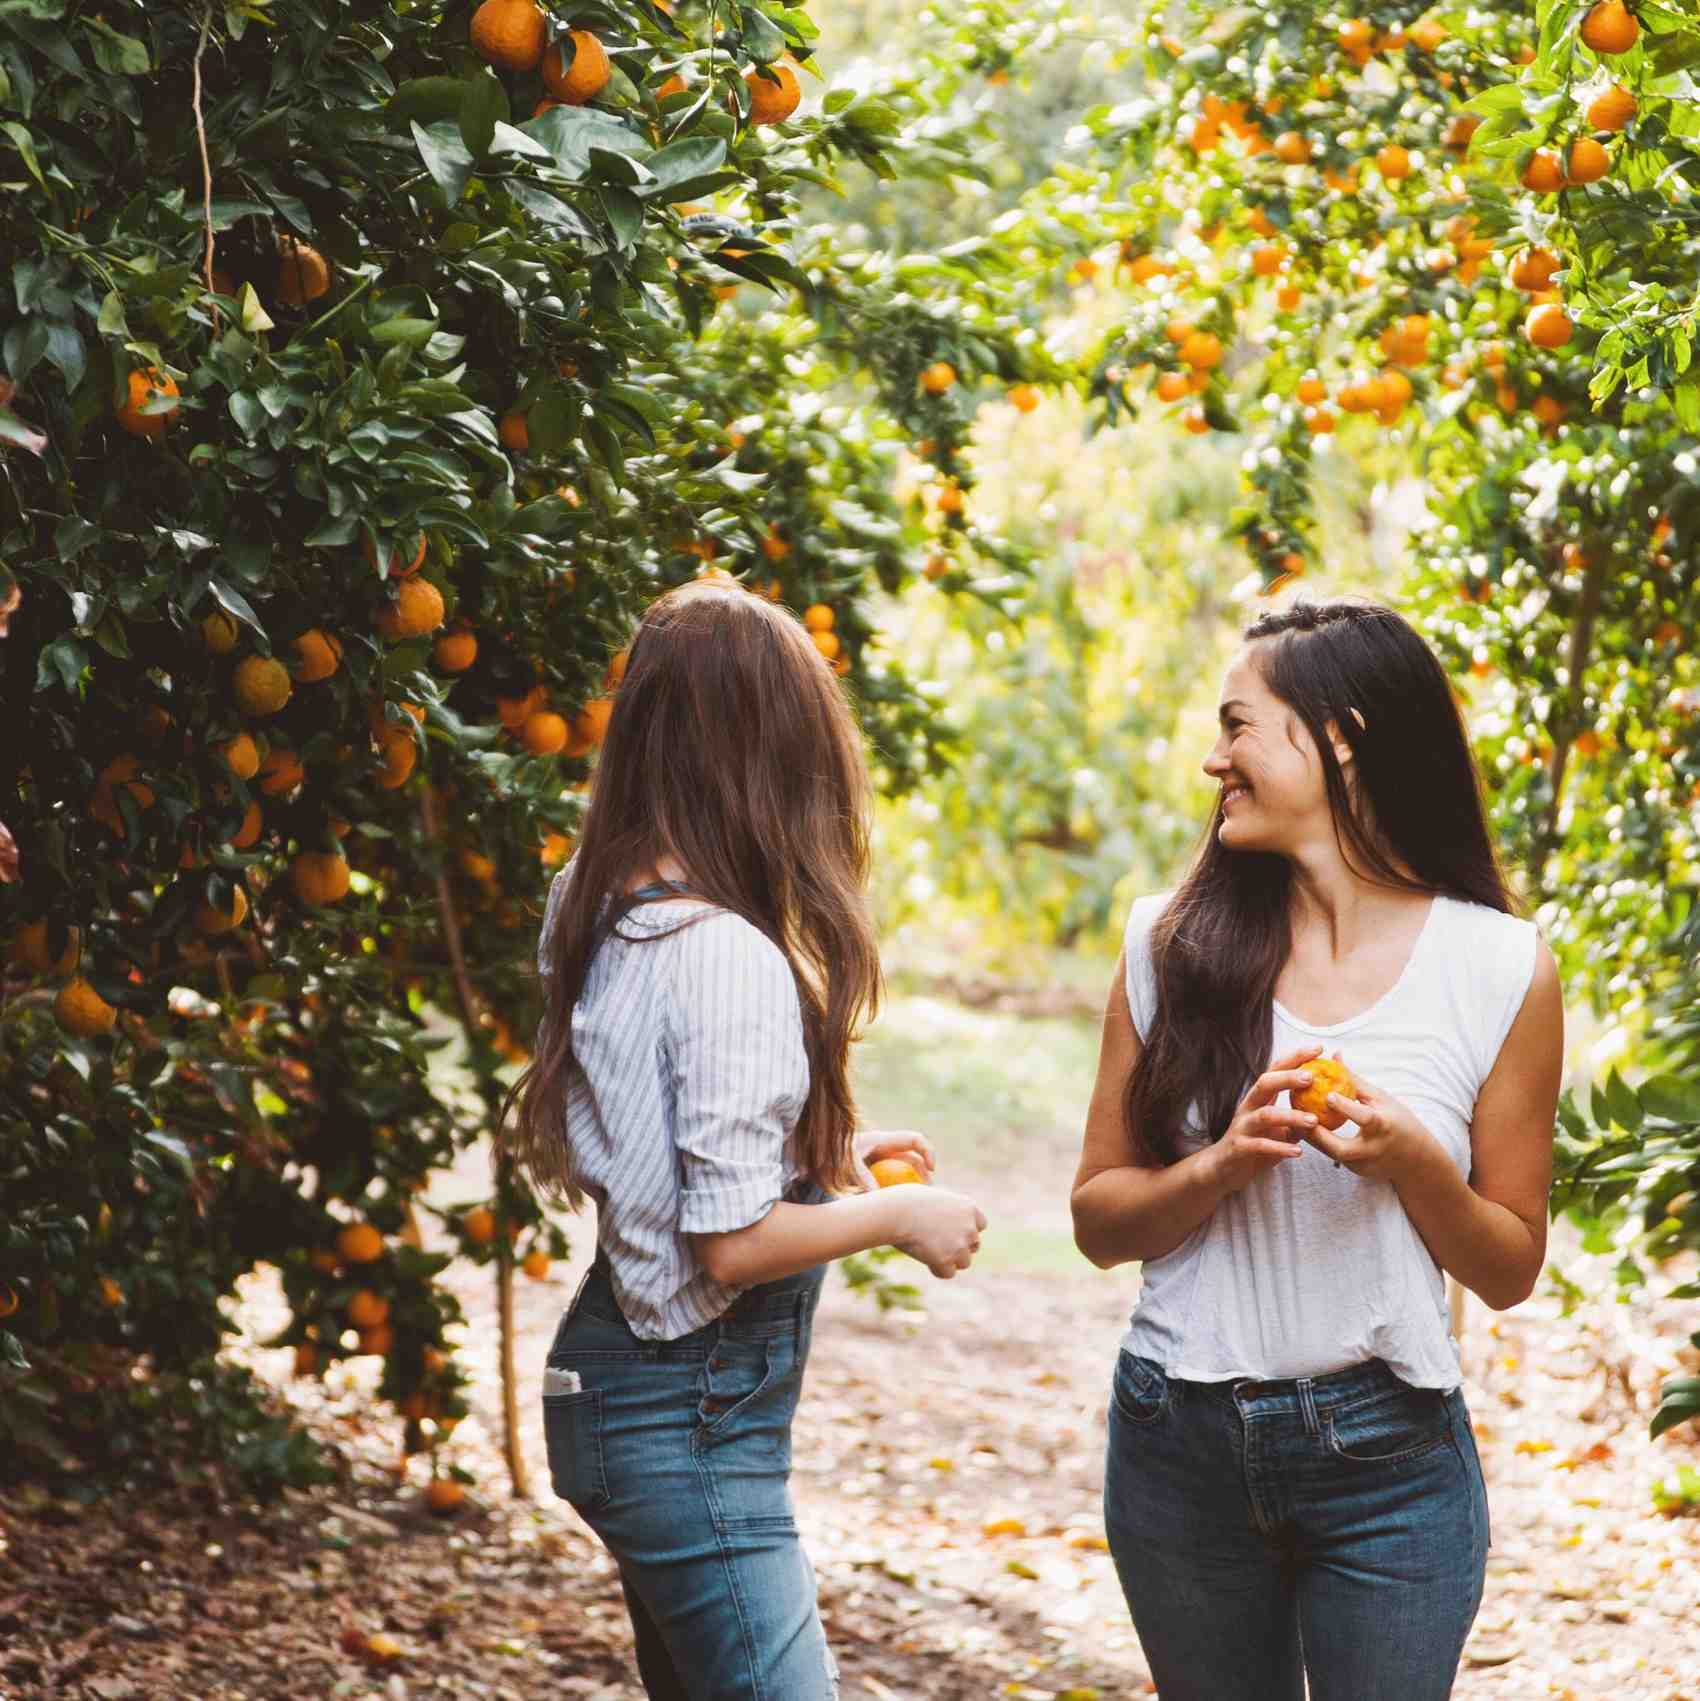 A Sweet Escape: Hosting the Most Magical Weekend Getaway in Ojai, California